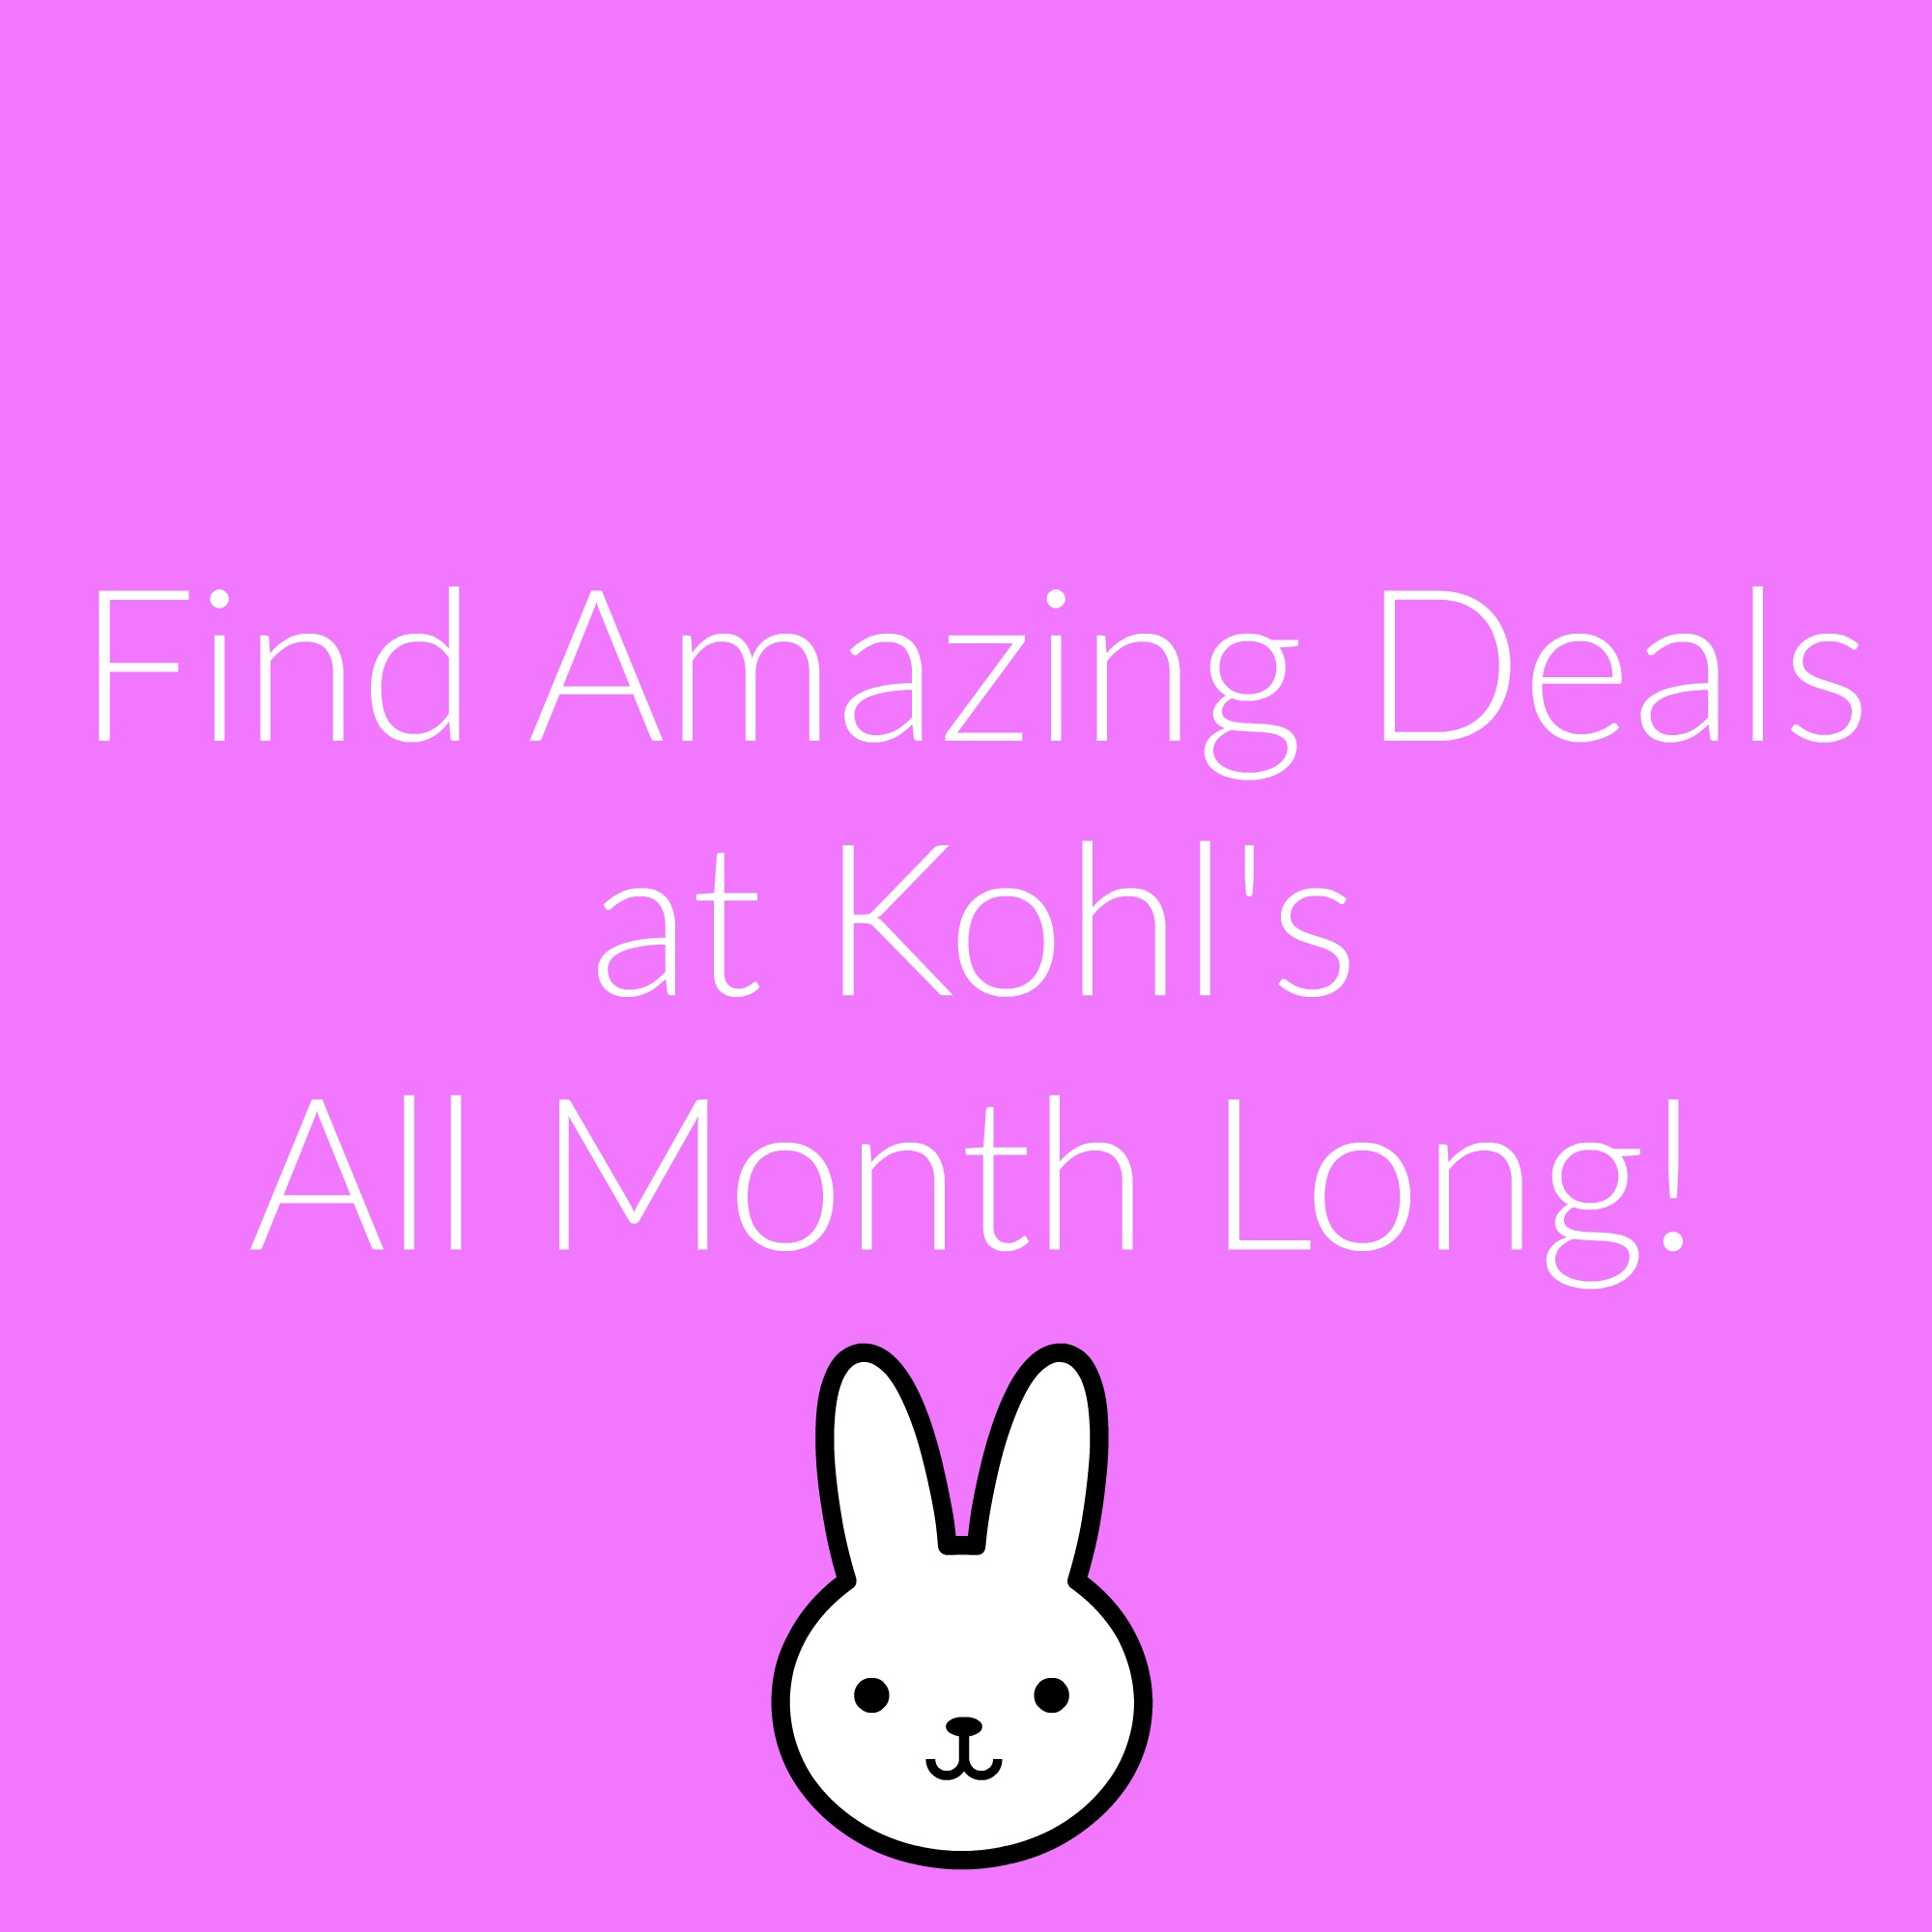 April is Full of Deals at Kohl's!